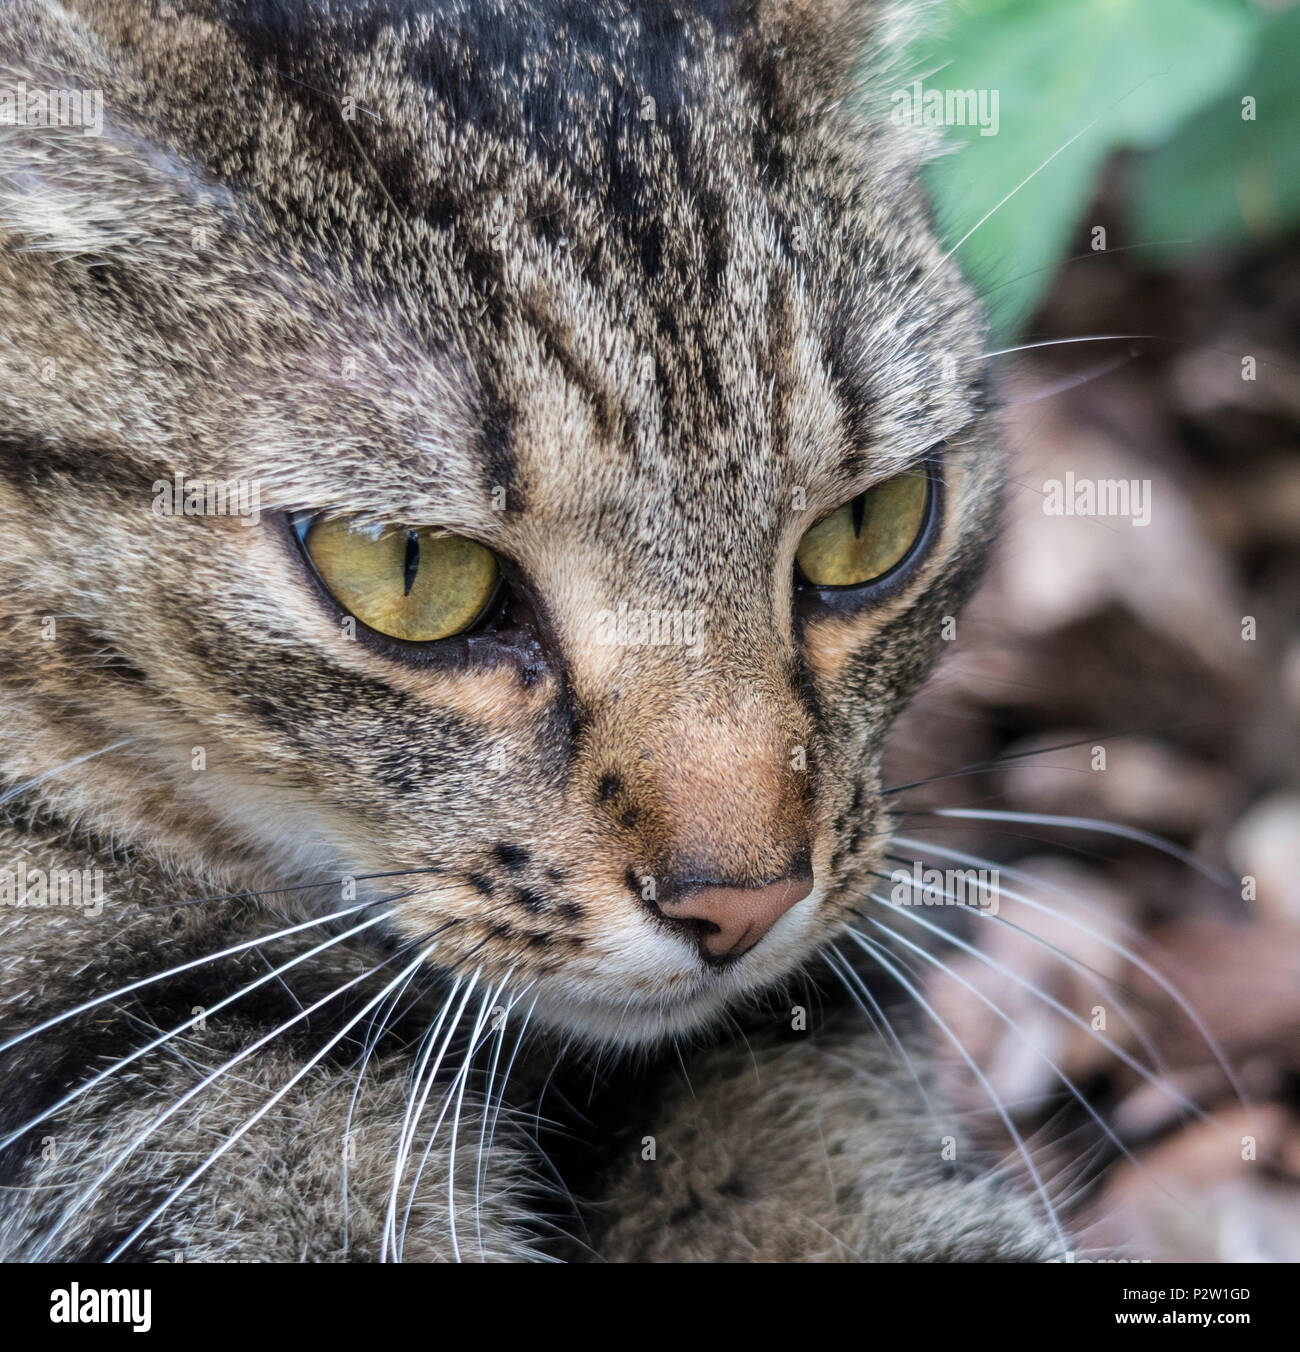 Tabby cat, bengal cat, head shot, head and shoulders, outside in a garden, - Stock Image